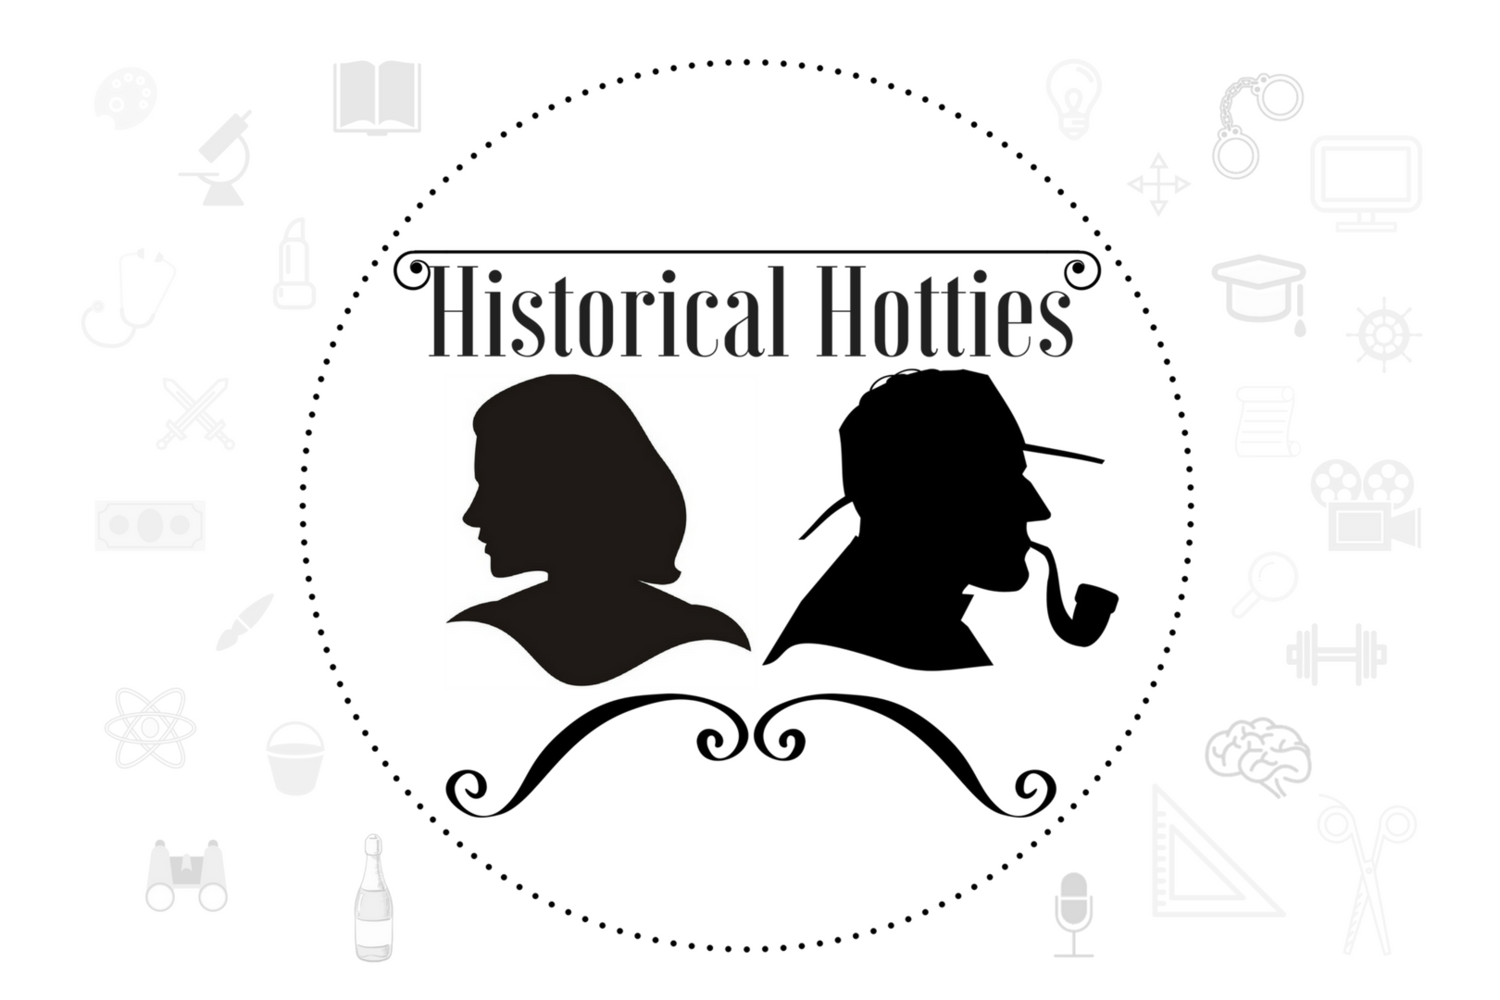 Read About Historical Hotties& Show Press Kit - Everything you need to know about the show and the creators, including audio files, images, what episodes we think you should start with, and why we started the dang thing to begin with!